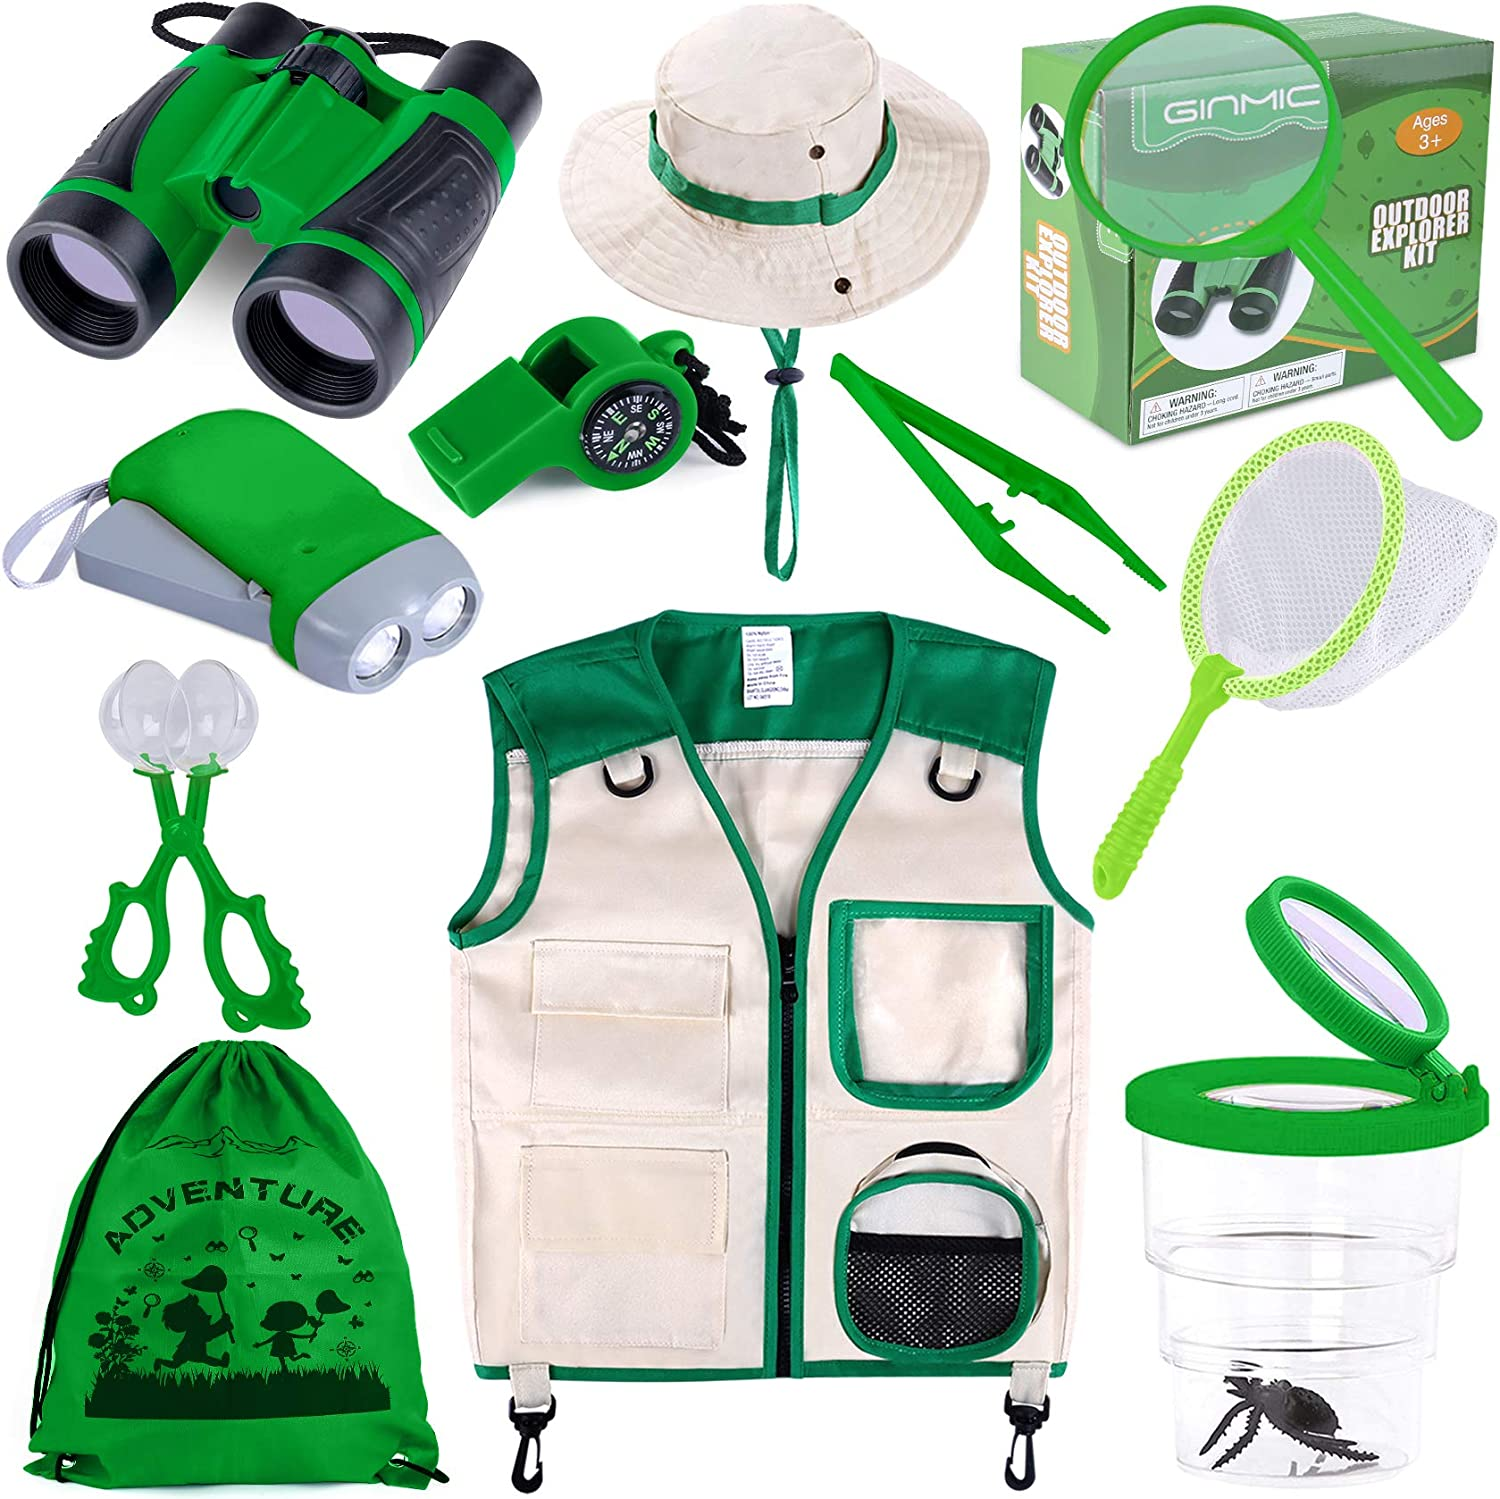 GINMIC Kids Explorer Kit & Bug Catching Kit, 11 Pcs Outdoor Exploration Kit for Kids Camping with Binoculars, Adventure, Hunting, Hiking, Educational Toy Gift for 3-12 Years Old Boys Girls